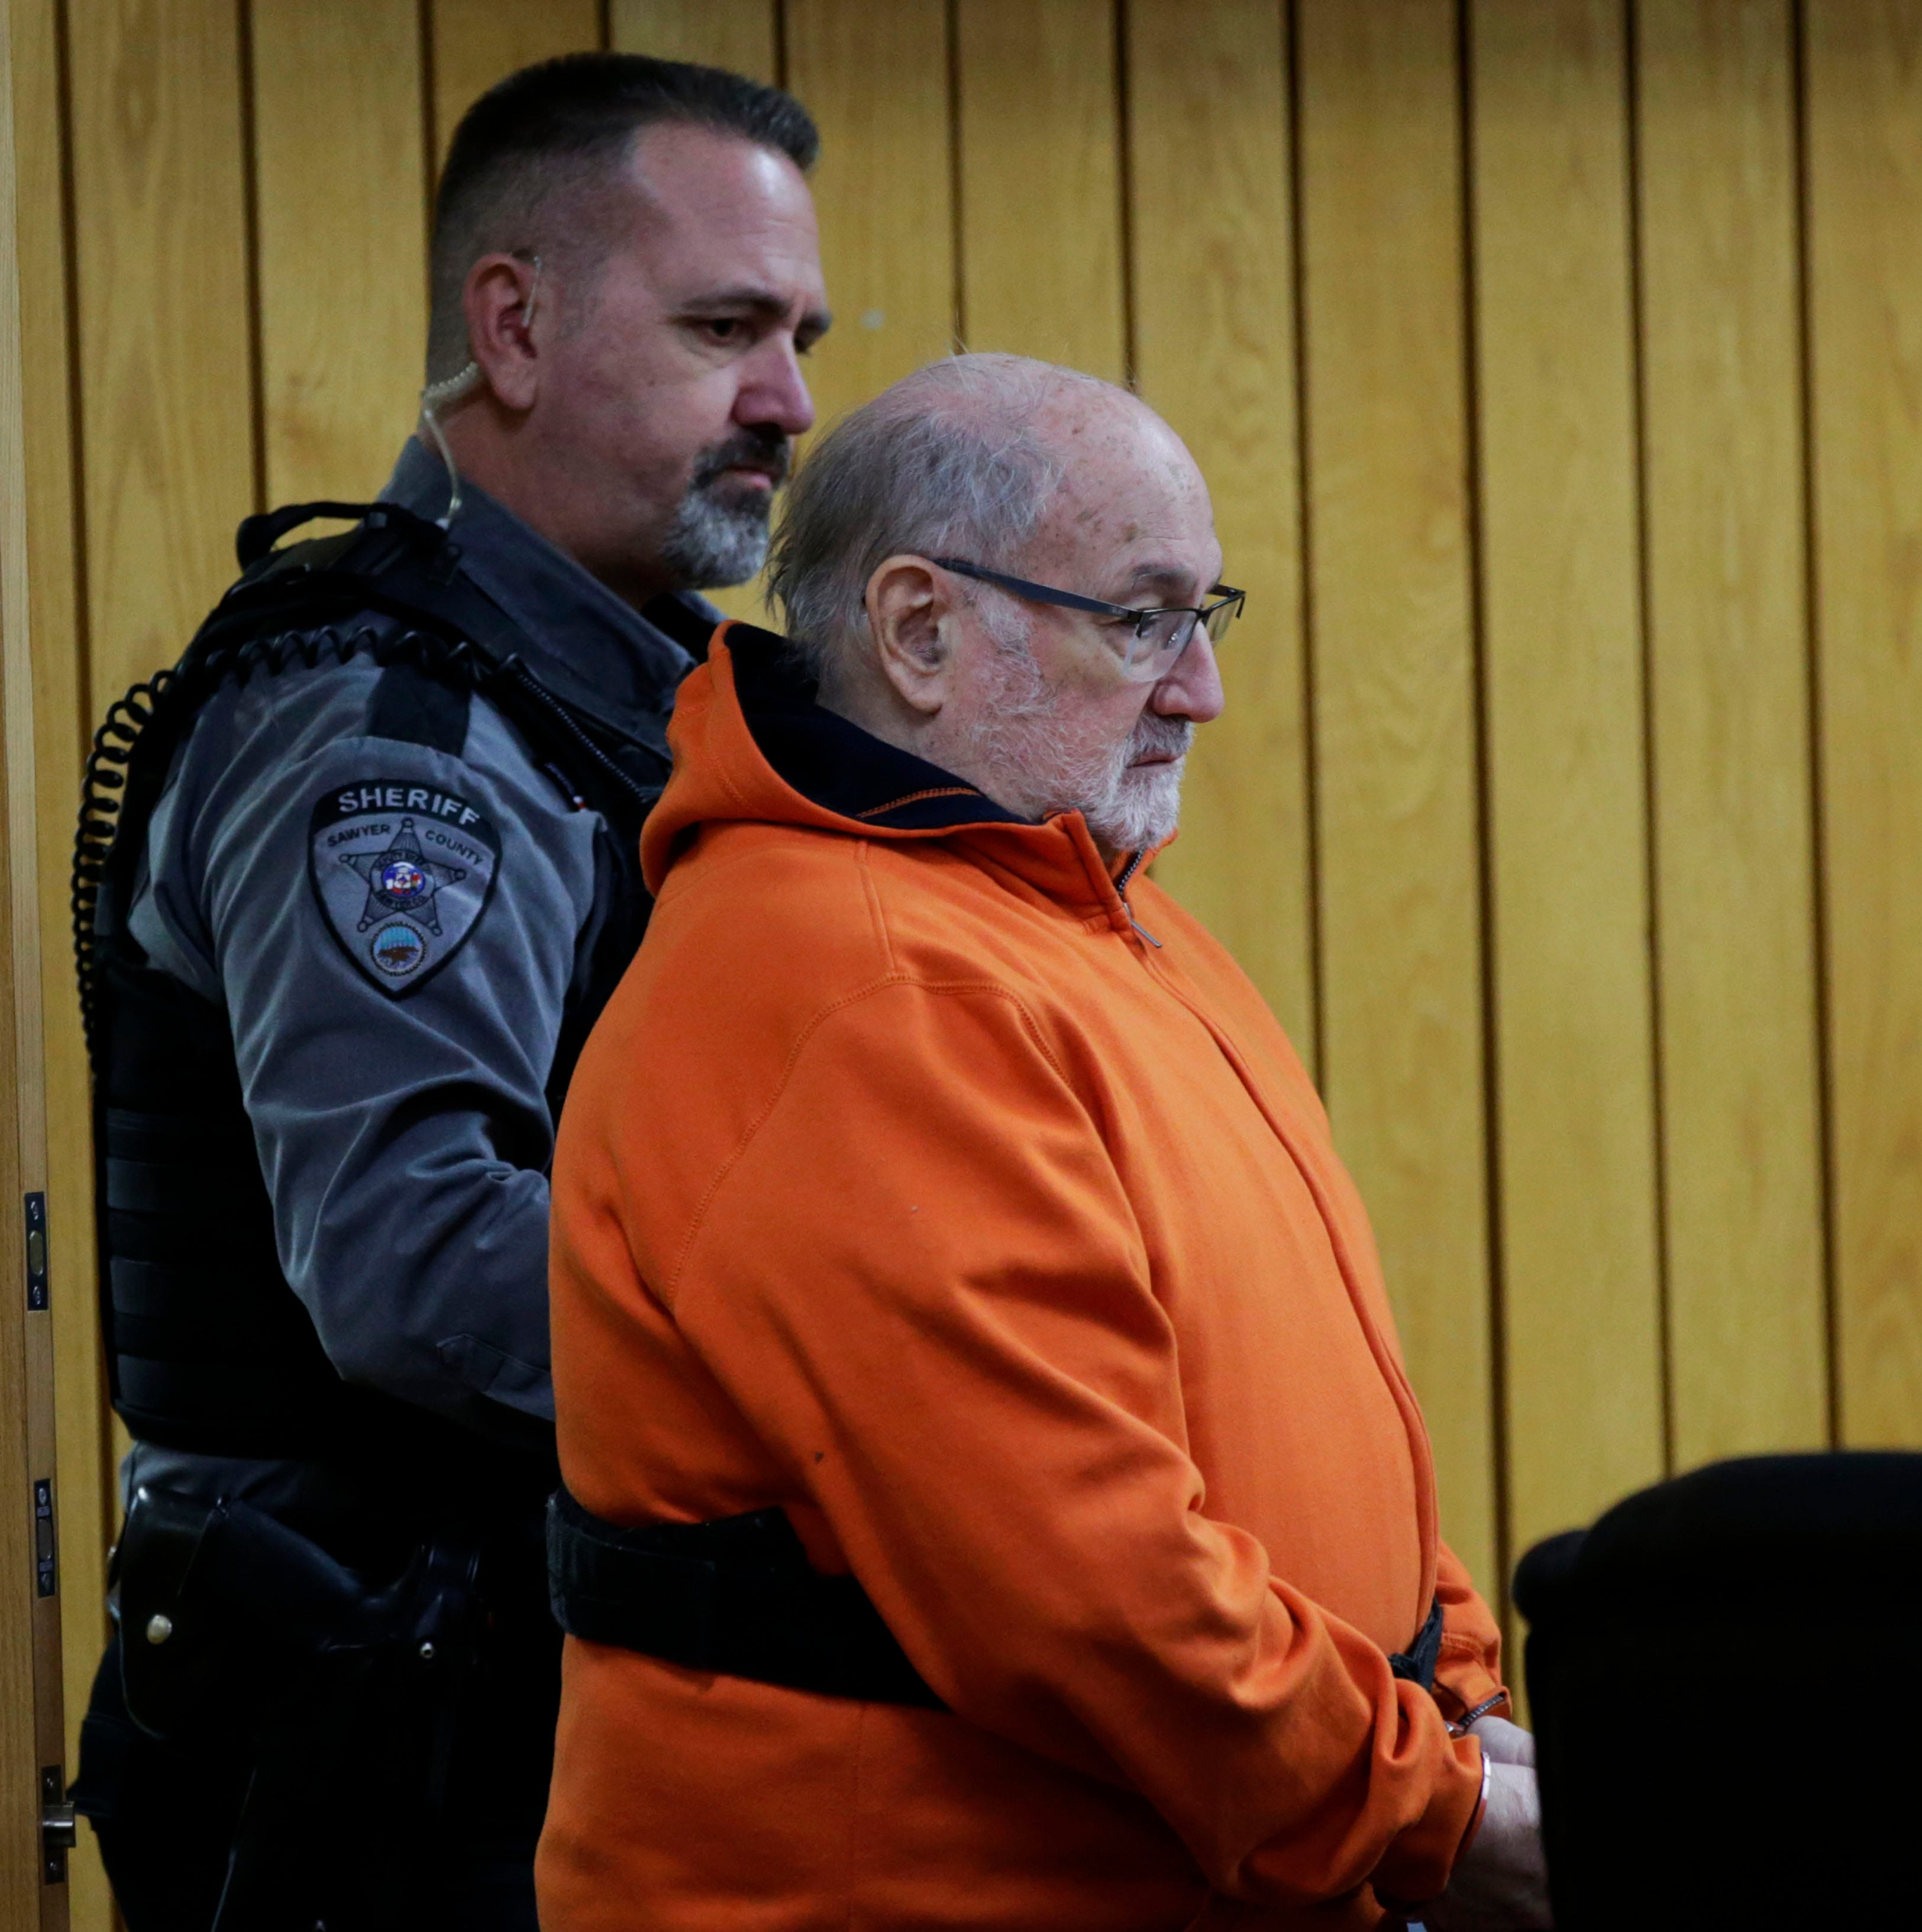 Priest abuse: Thomas Ericksen seeks plea deal to avoid jury trial in Sawyer County